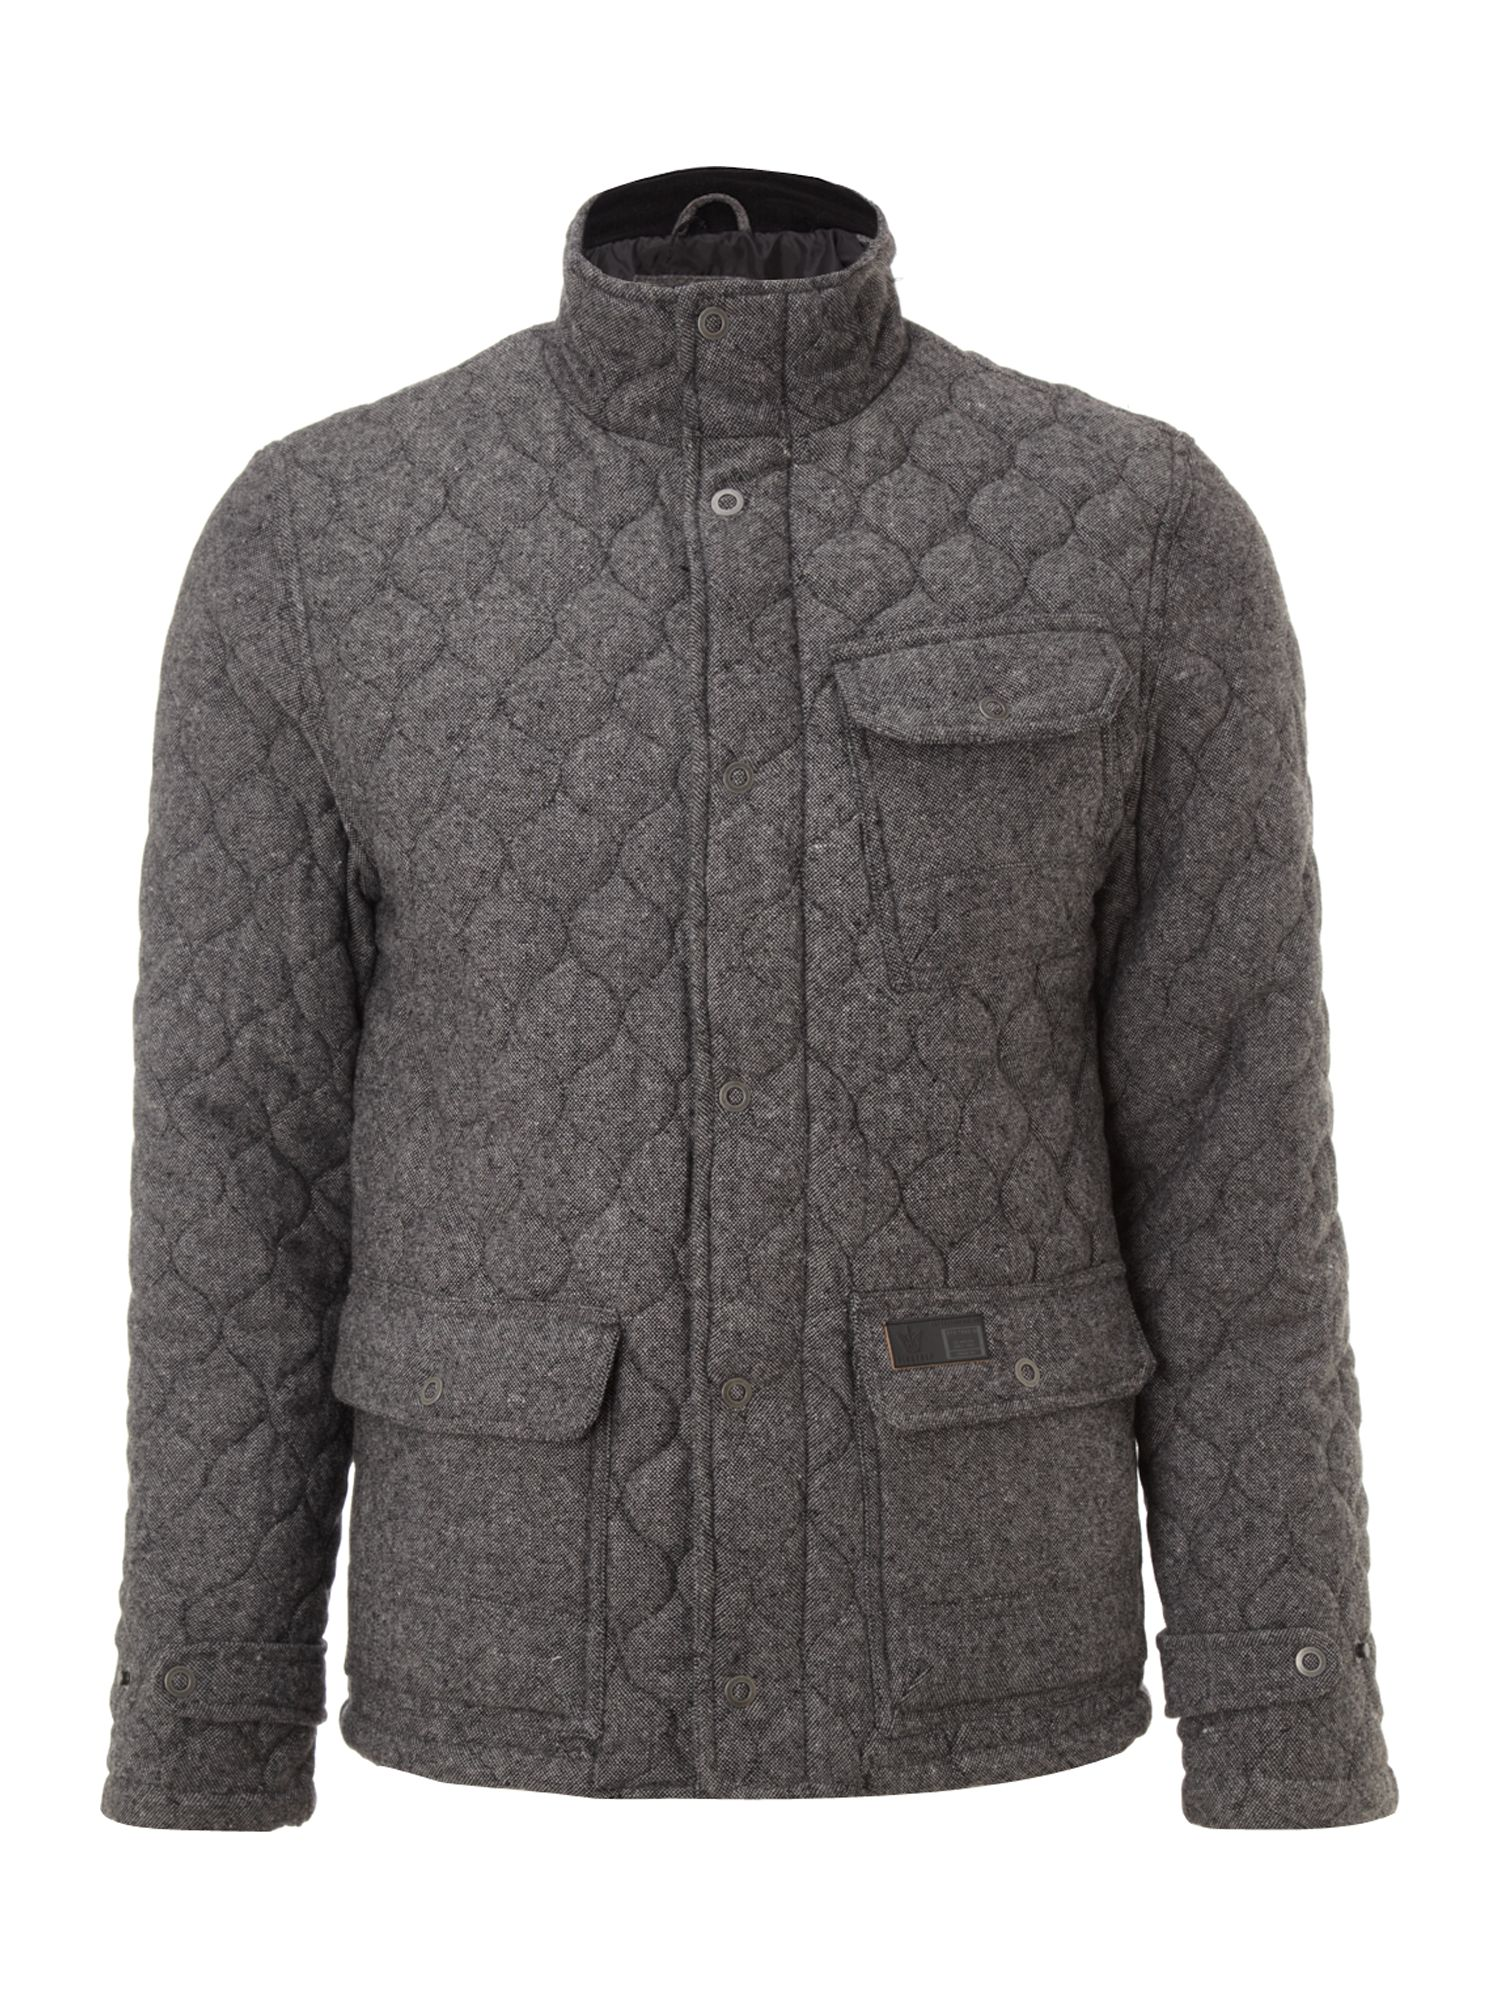 Three pocket quilted jacket